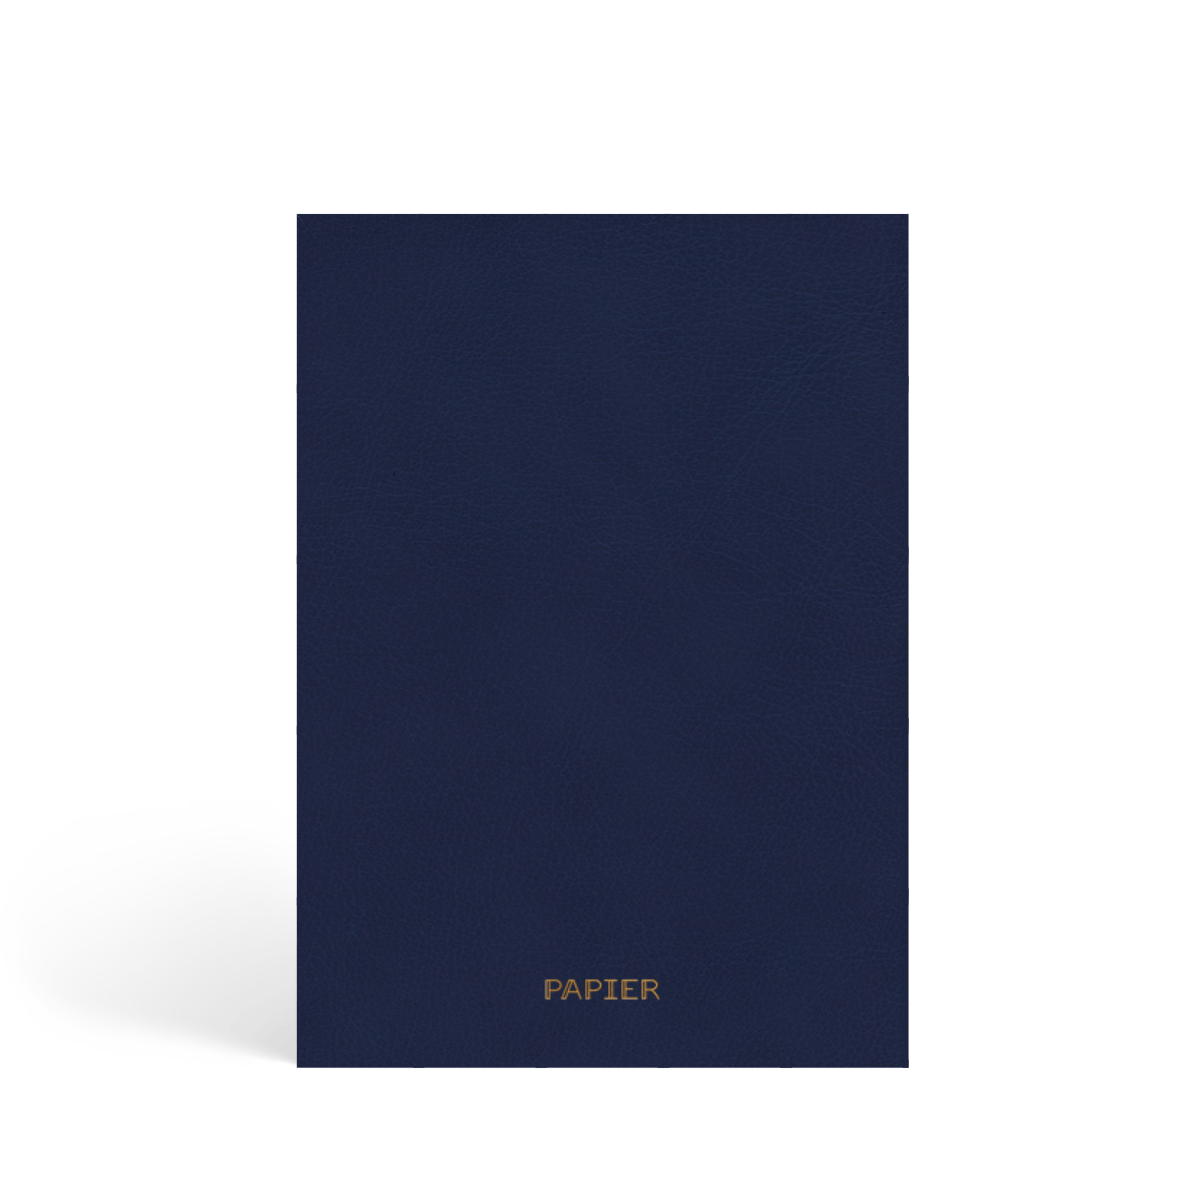 Https%3a%2f%2fwww.papier.com%2fproduct image%2f95377%2f5%2froyal blue monogram 23880 back 1573495872.png?ixlib=rb 1.1